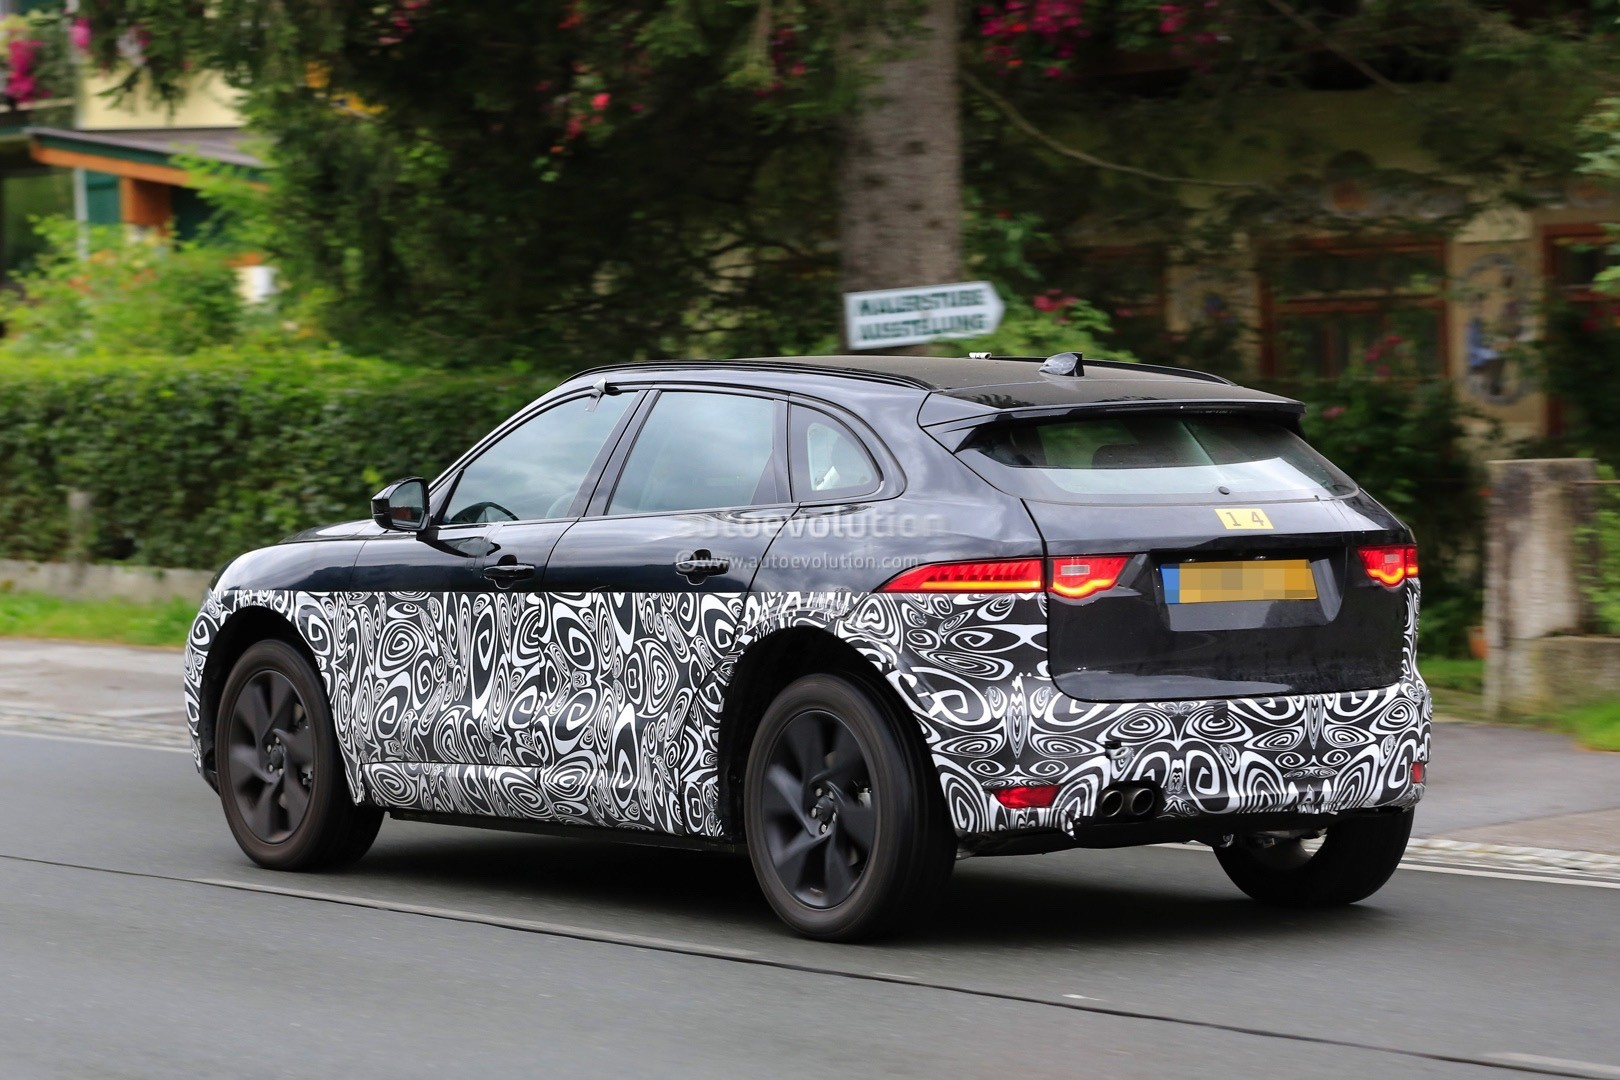 Jaguar F Type S >> Jaguar Electric SUV Spied, F-Pace Design Cues Galore - autoevolution